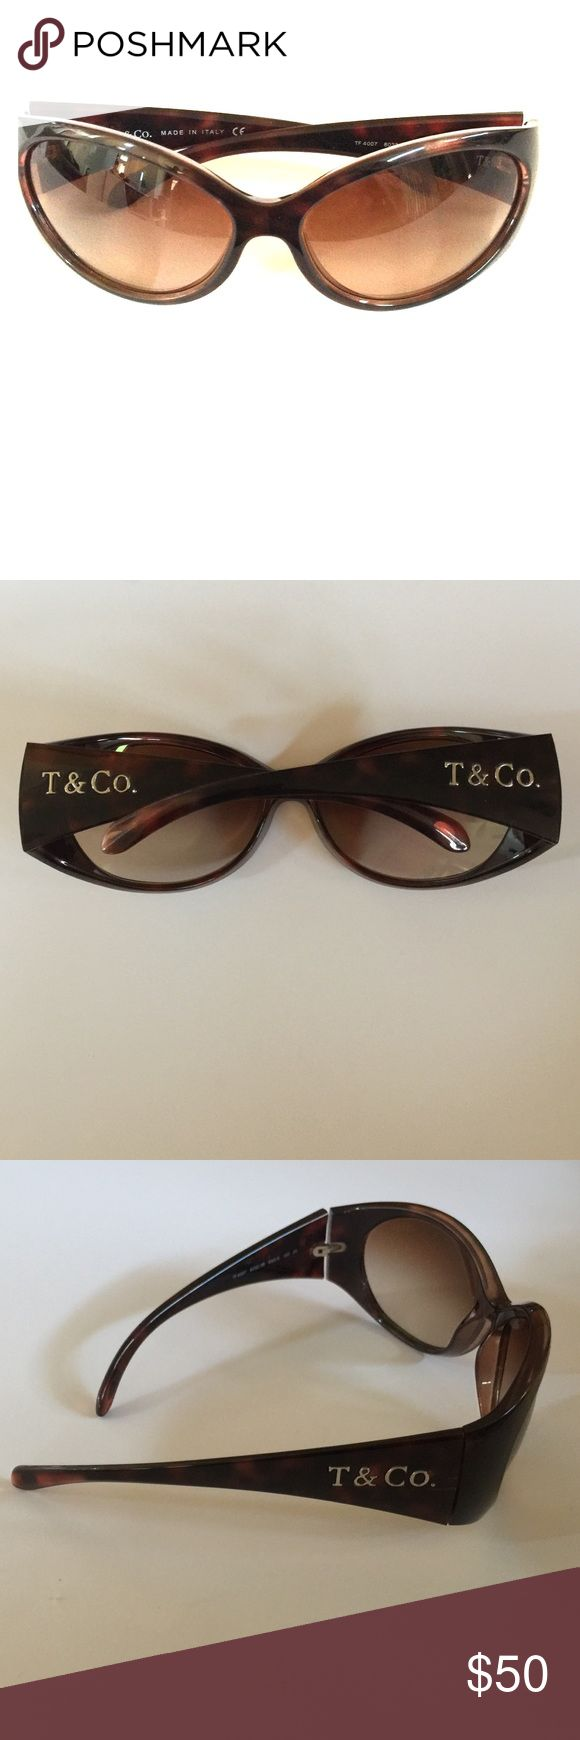 Tiffany and Co brown colored designer sunglasses Tiffany and Co brown tortoise colored designer sunglasses for sale. Only work a few times, no scratches. Accessories Sunglasses